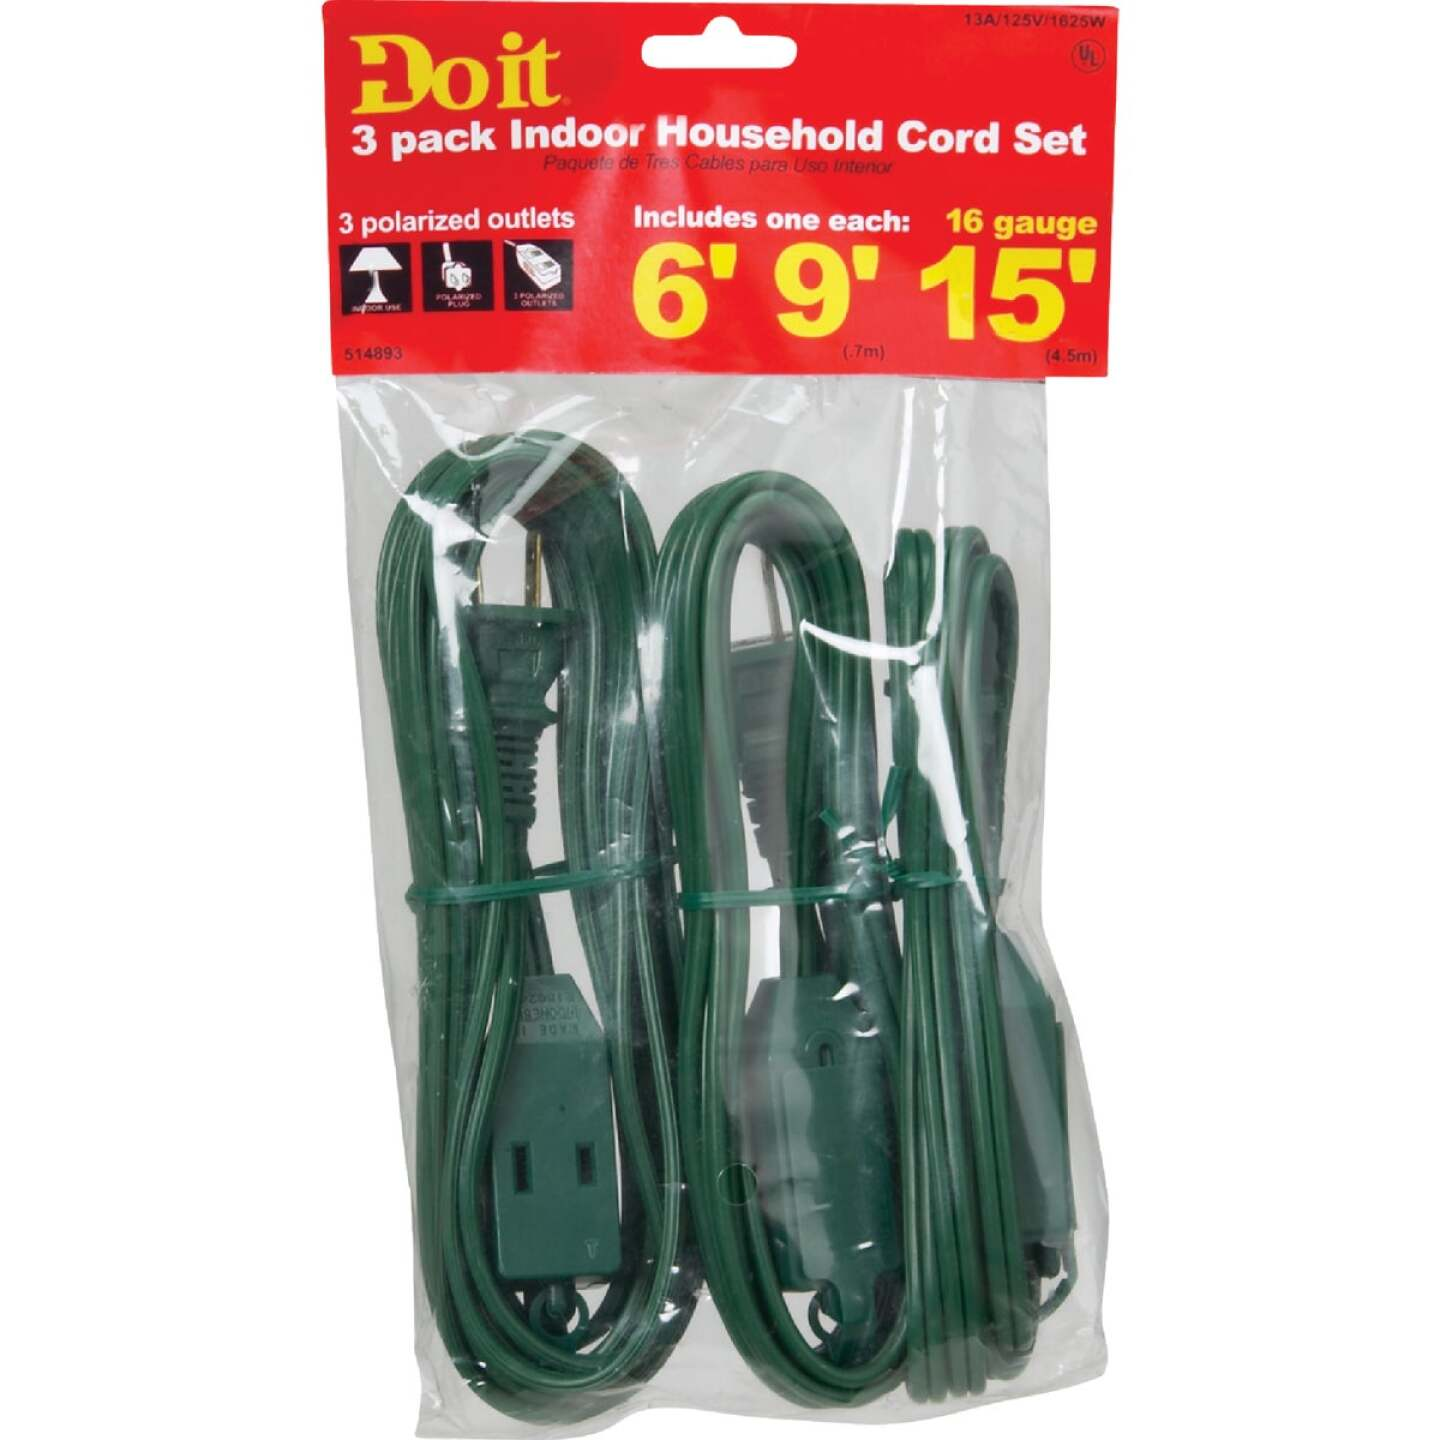 Do it 6 Ft./9 Ft./15 Ft. 16/2 Extension Cord Set (3-Pack) Image 2